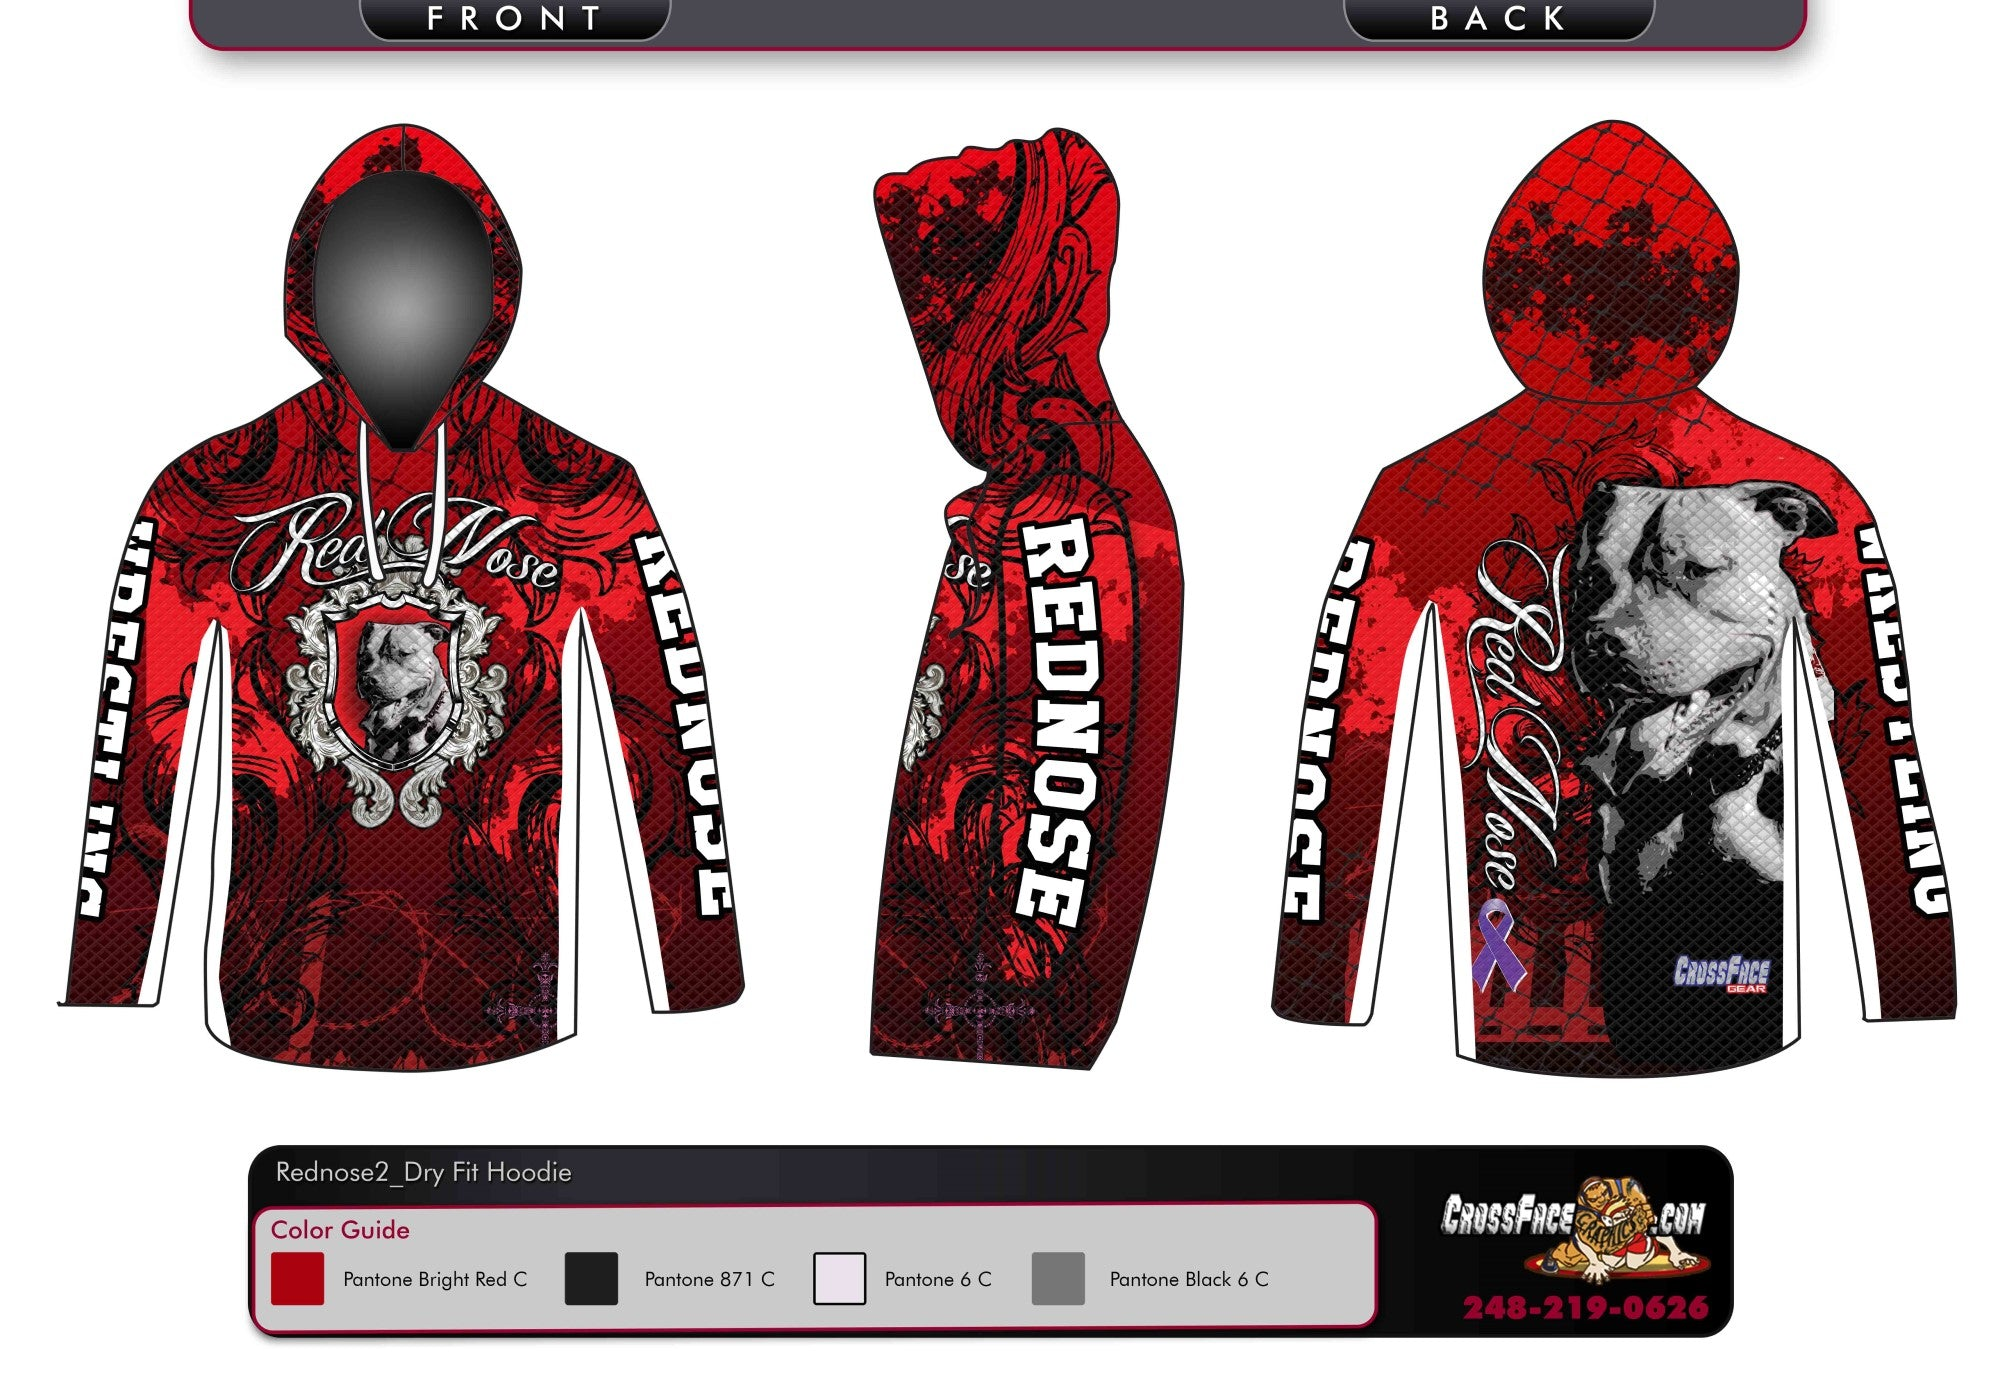 Red Nose Wrestling Full Sublimated DryFit Hoodie (Red) 2017